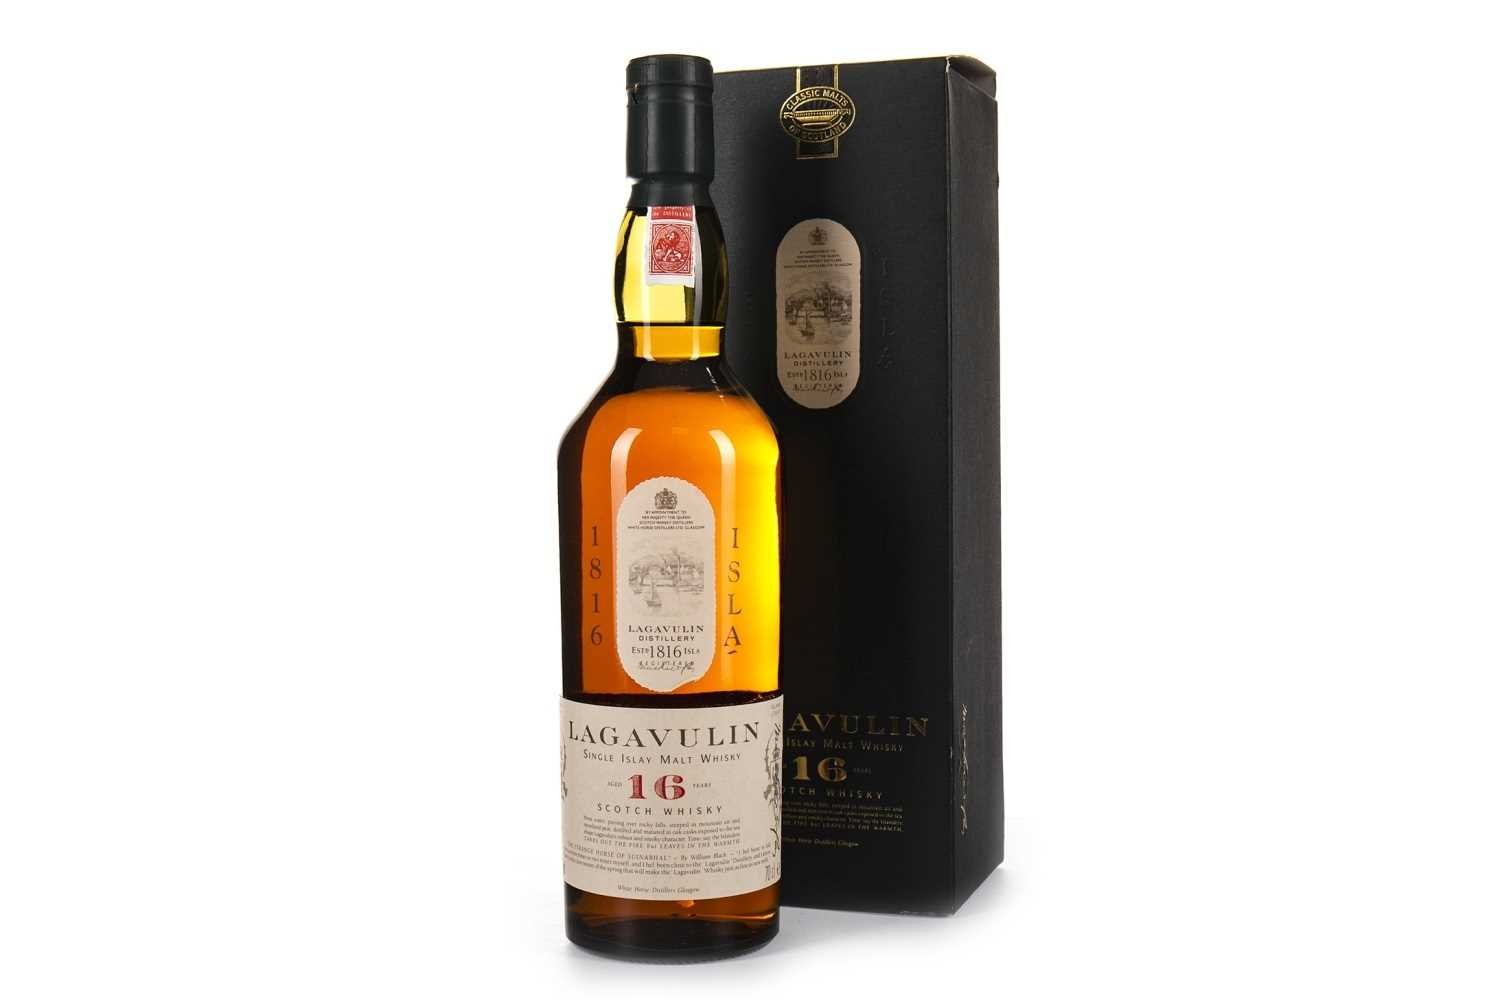 Lot 7-LAGAVULIN AGED 16 YEARS WHITE HORSE DISTILLERS